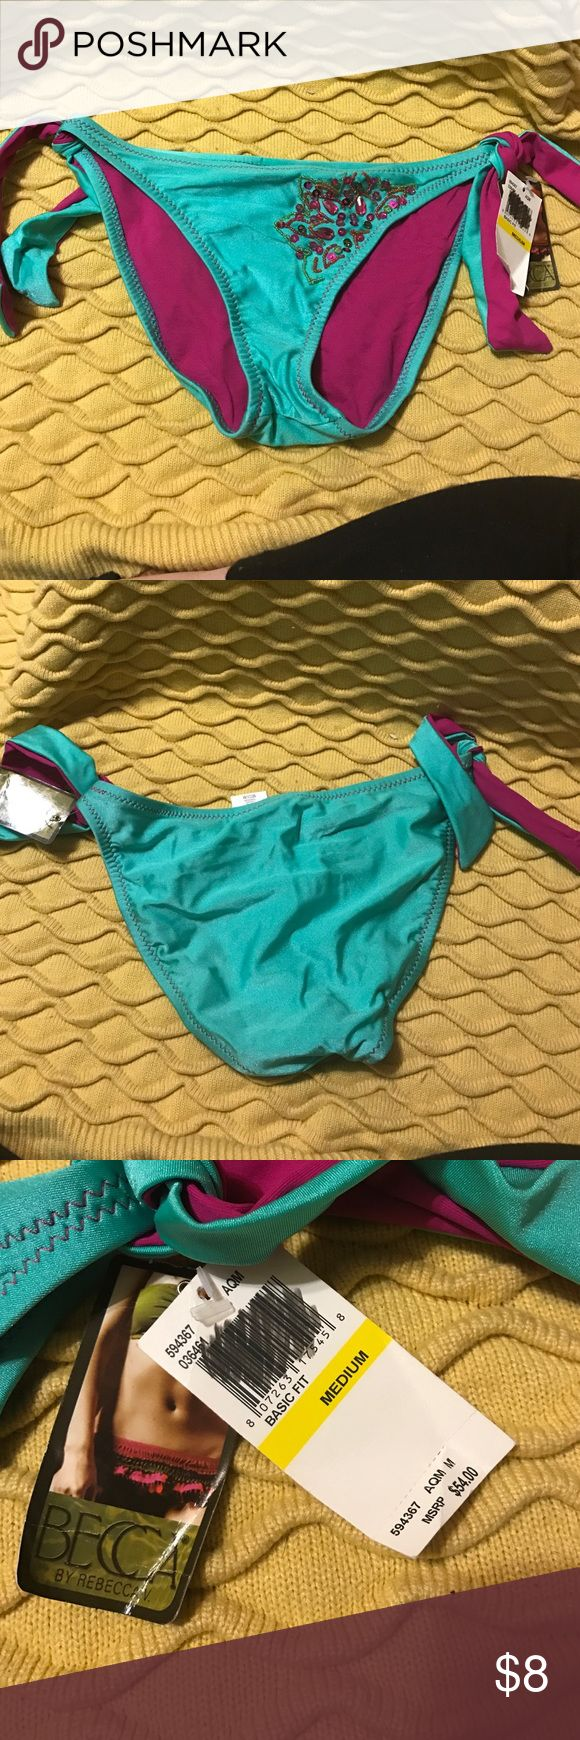 Becca bathing suit bottoms. Great for your winter cruise! NWT. Perfect to add to a plain bathing suit top! Mix and match is in style! BECCA Swim Bikinis